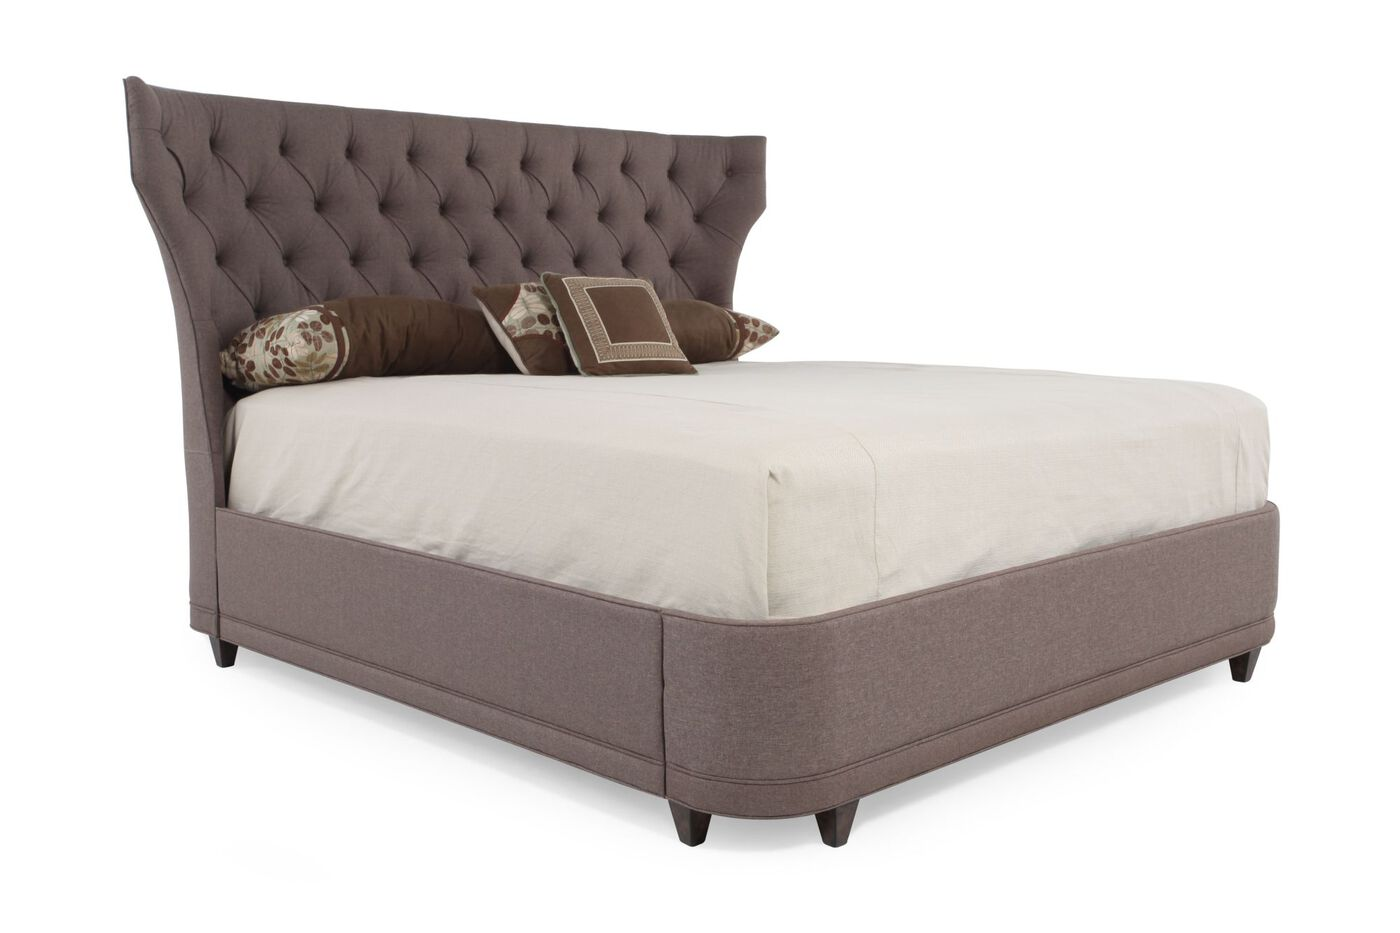 """Wayfair Tufted Headboard Bedding Bedroom Transitional With: 60.5"""" Transitional Button Tufted Platform Bed In Nutmeg"""